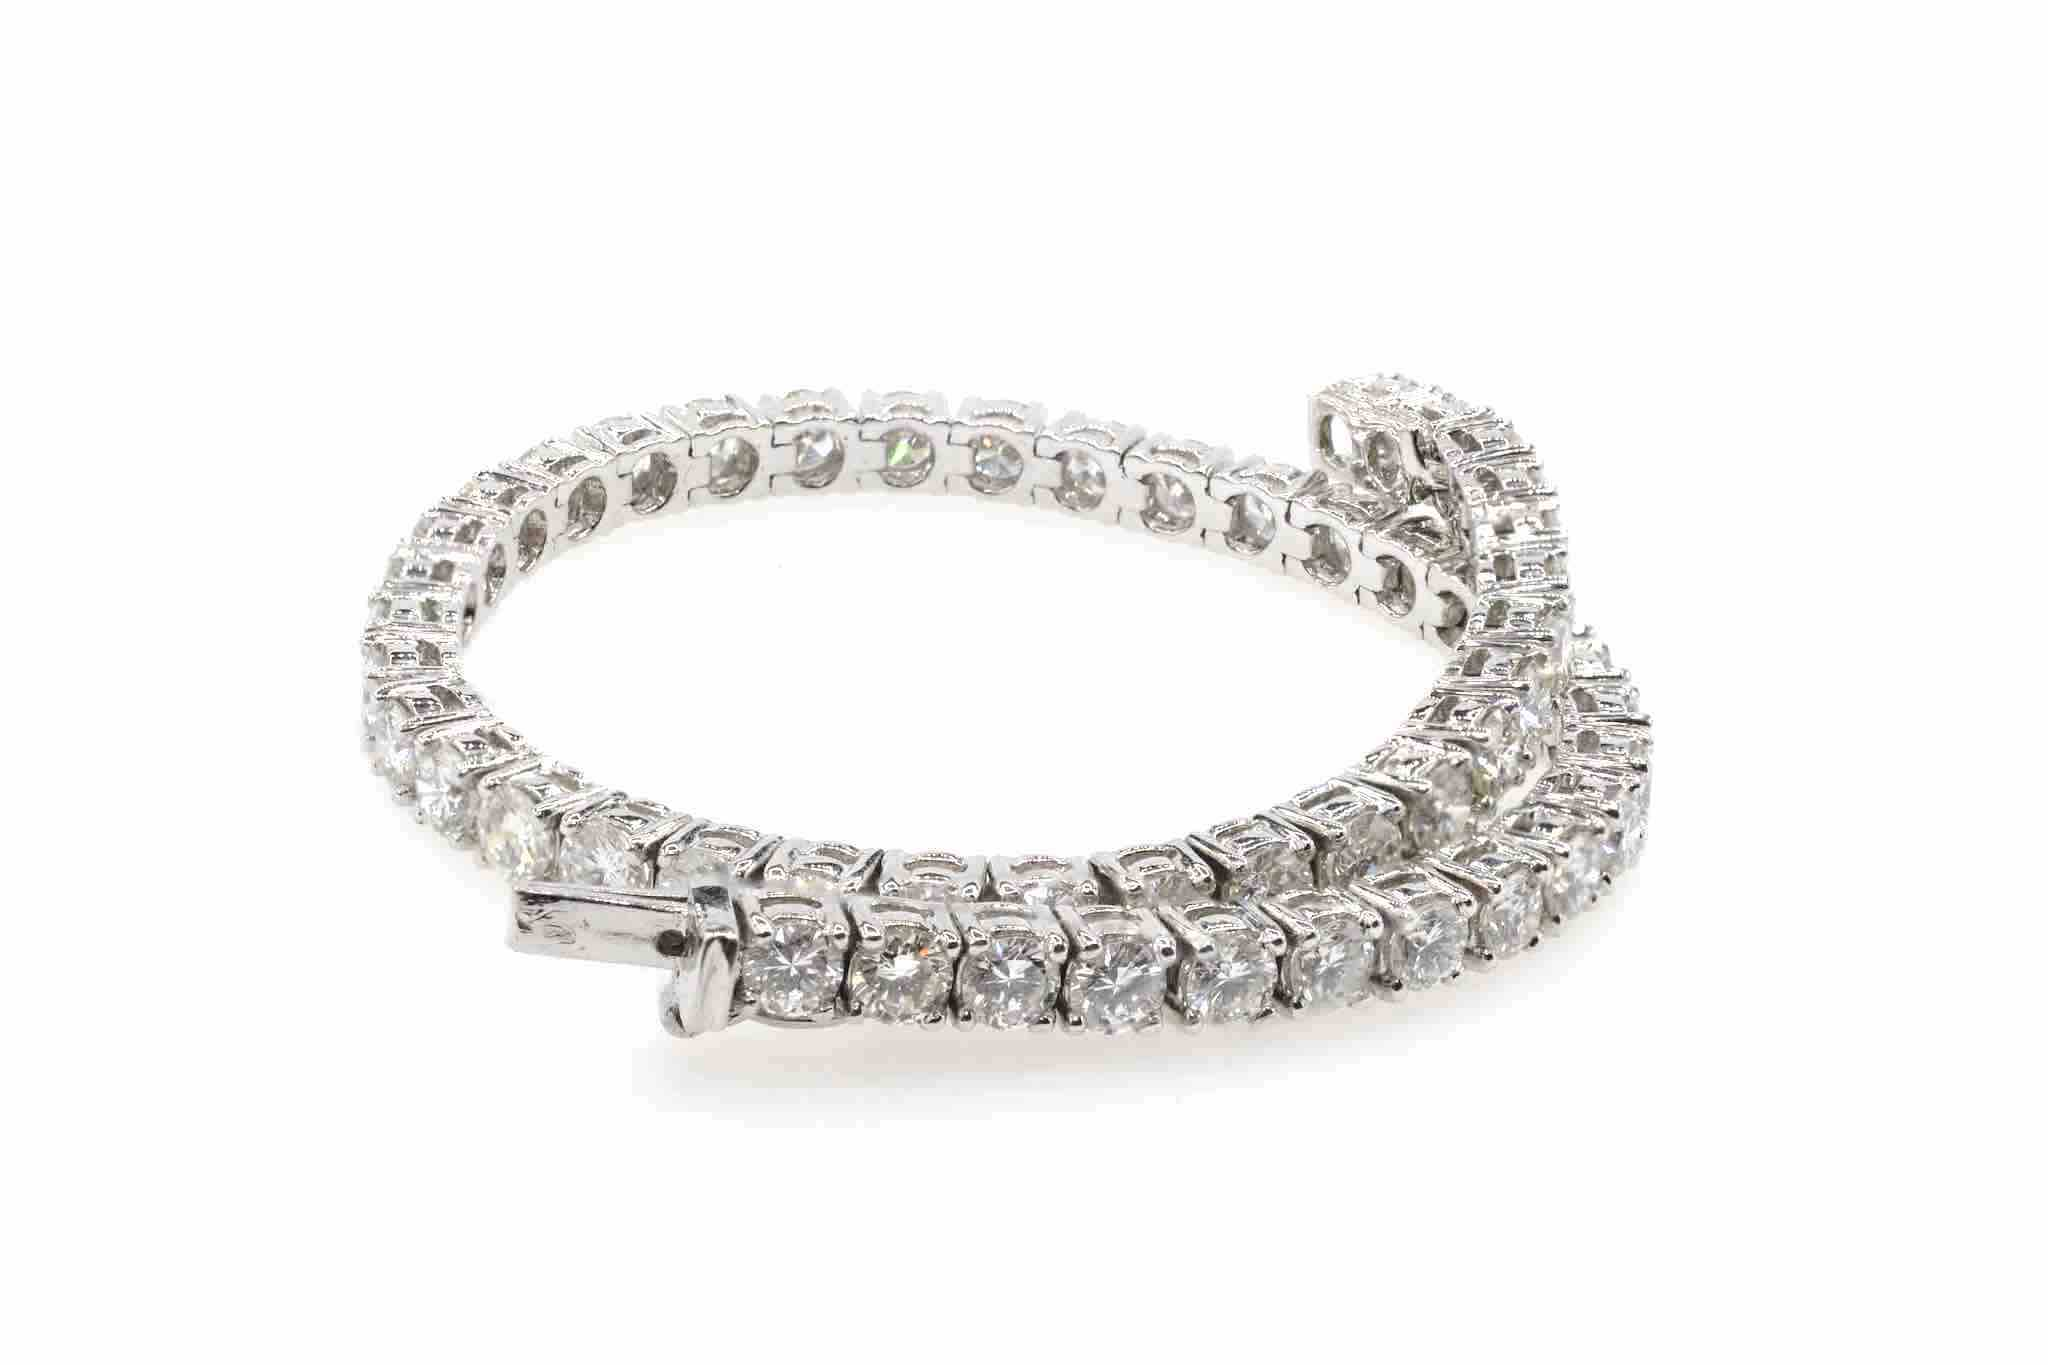 bracelet rivière de diamants en or blanc 18k